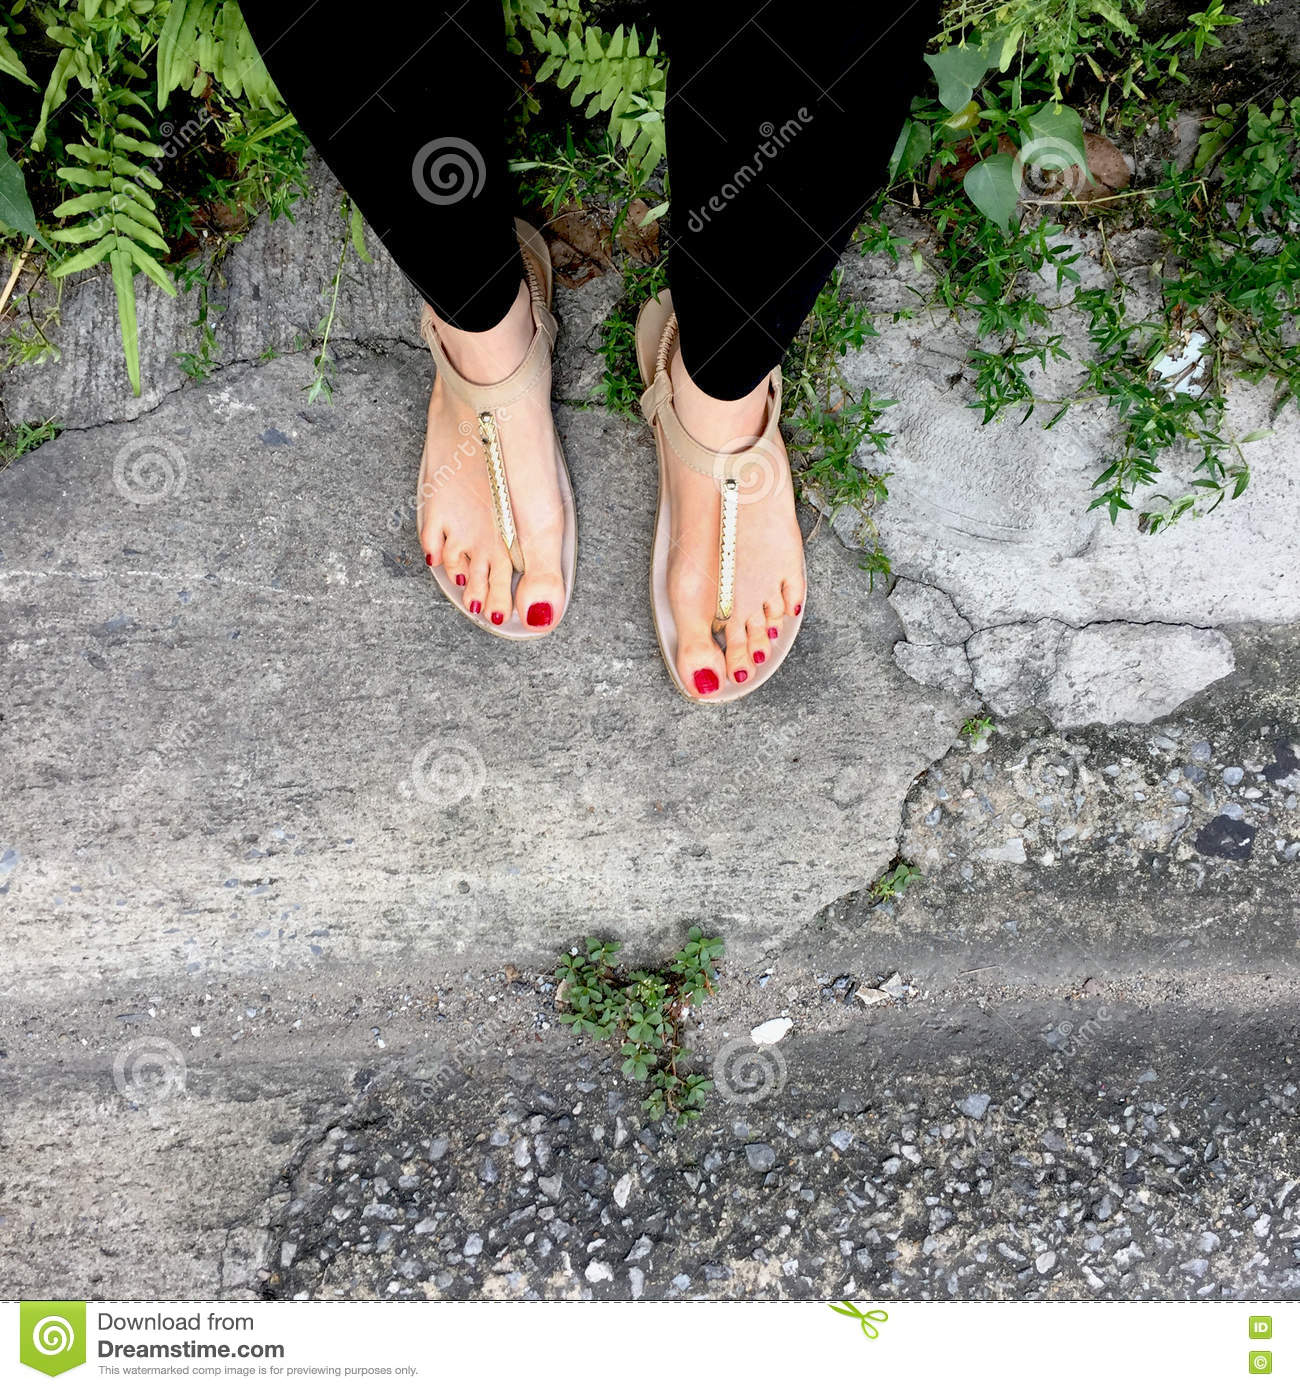 Love These Floors From Flip Or Flop: Female Legs Wearing Footwear Shoes Or Flip-flop Outdoor